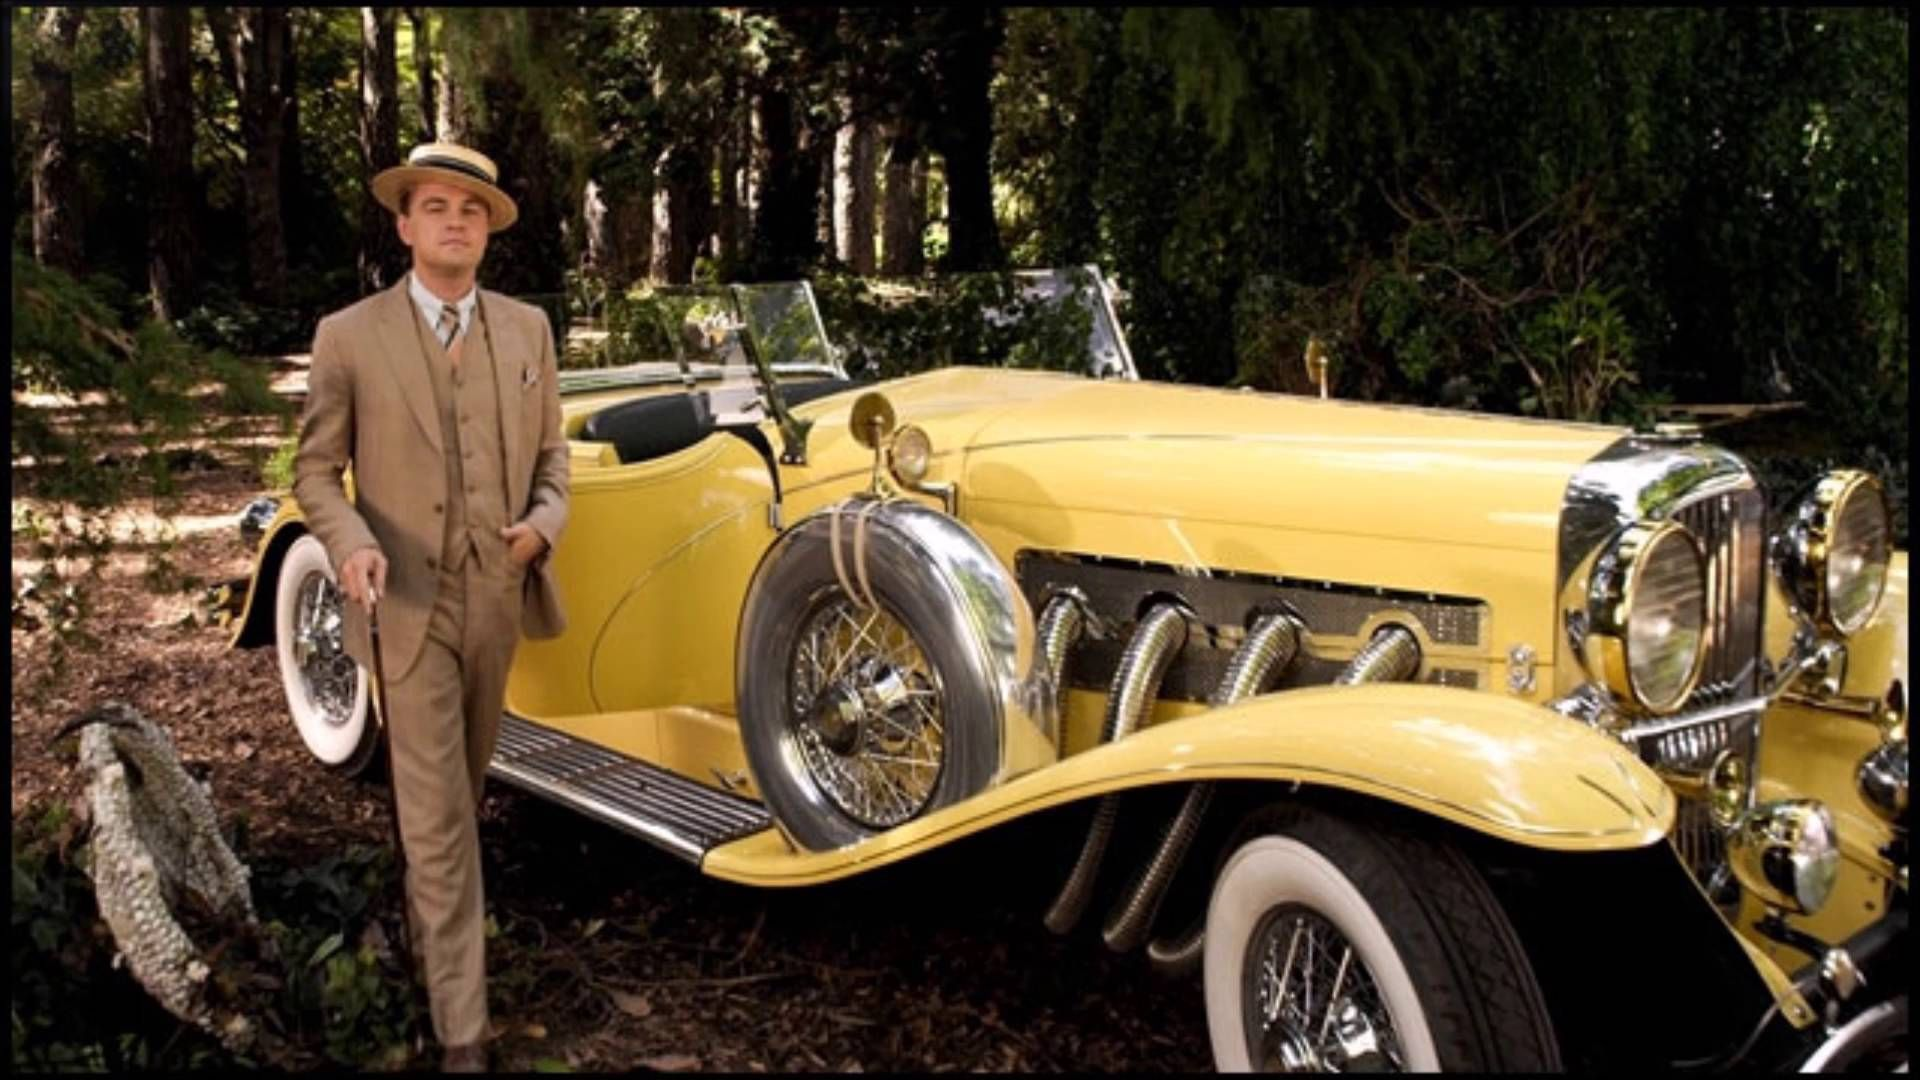 The Great Gatsby Quot Cars Of The 1920s Youtube The Great Gatsby